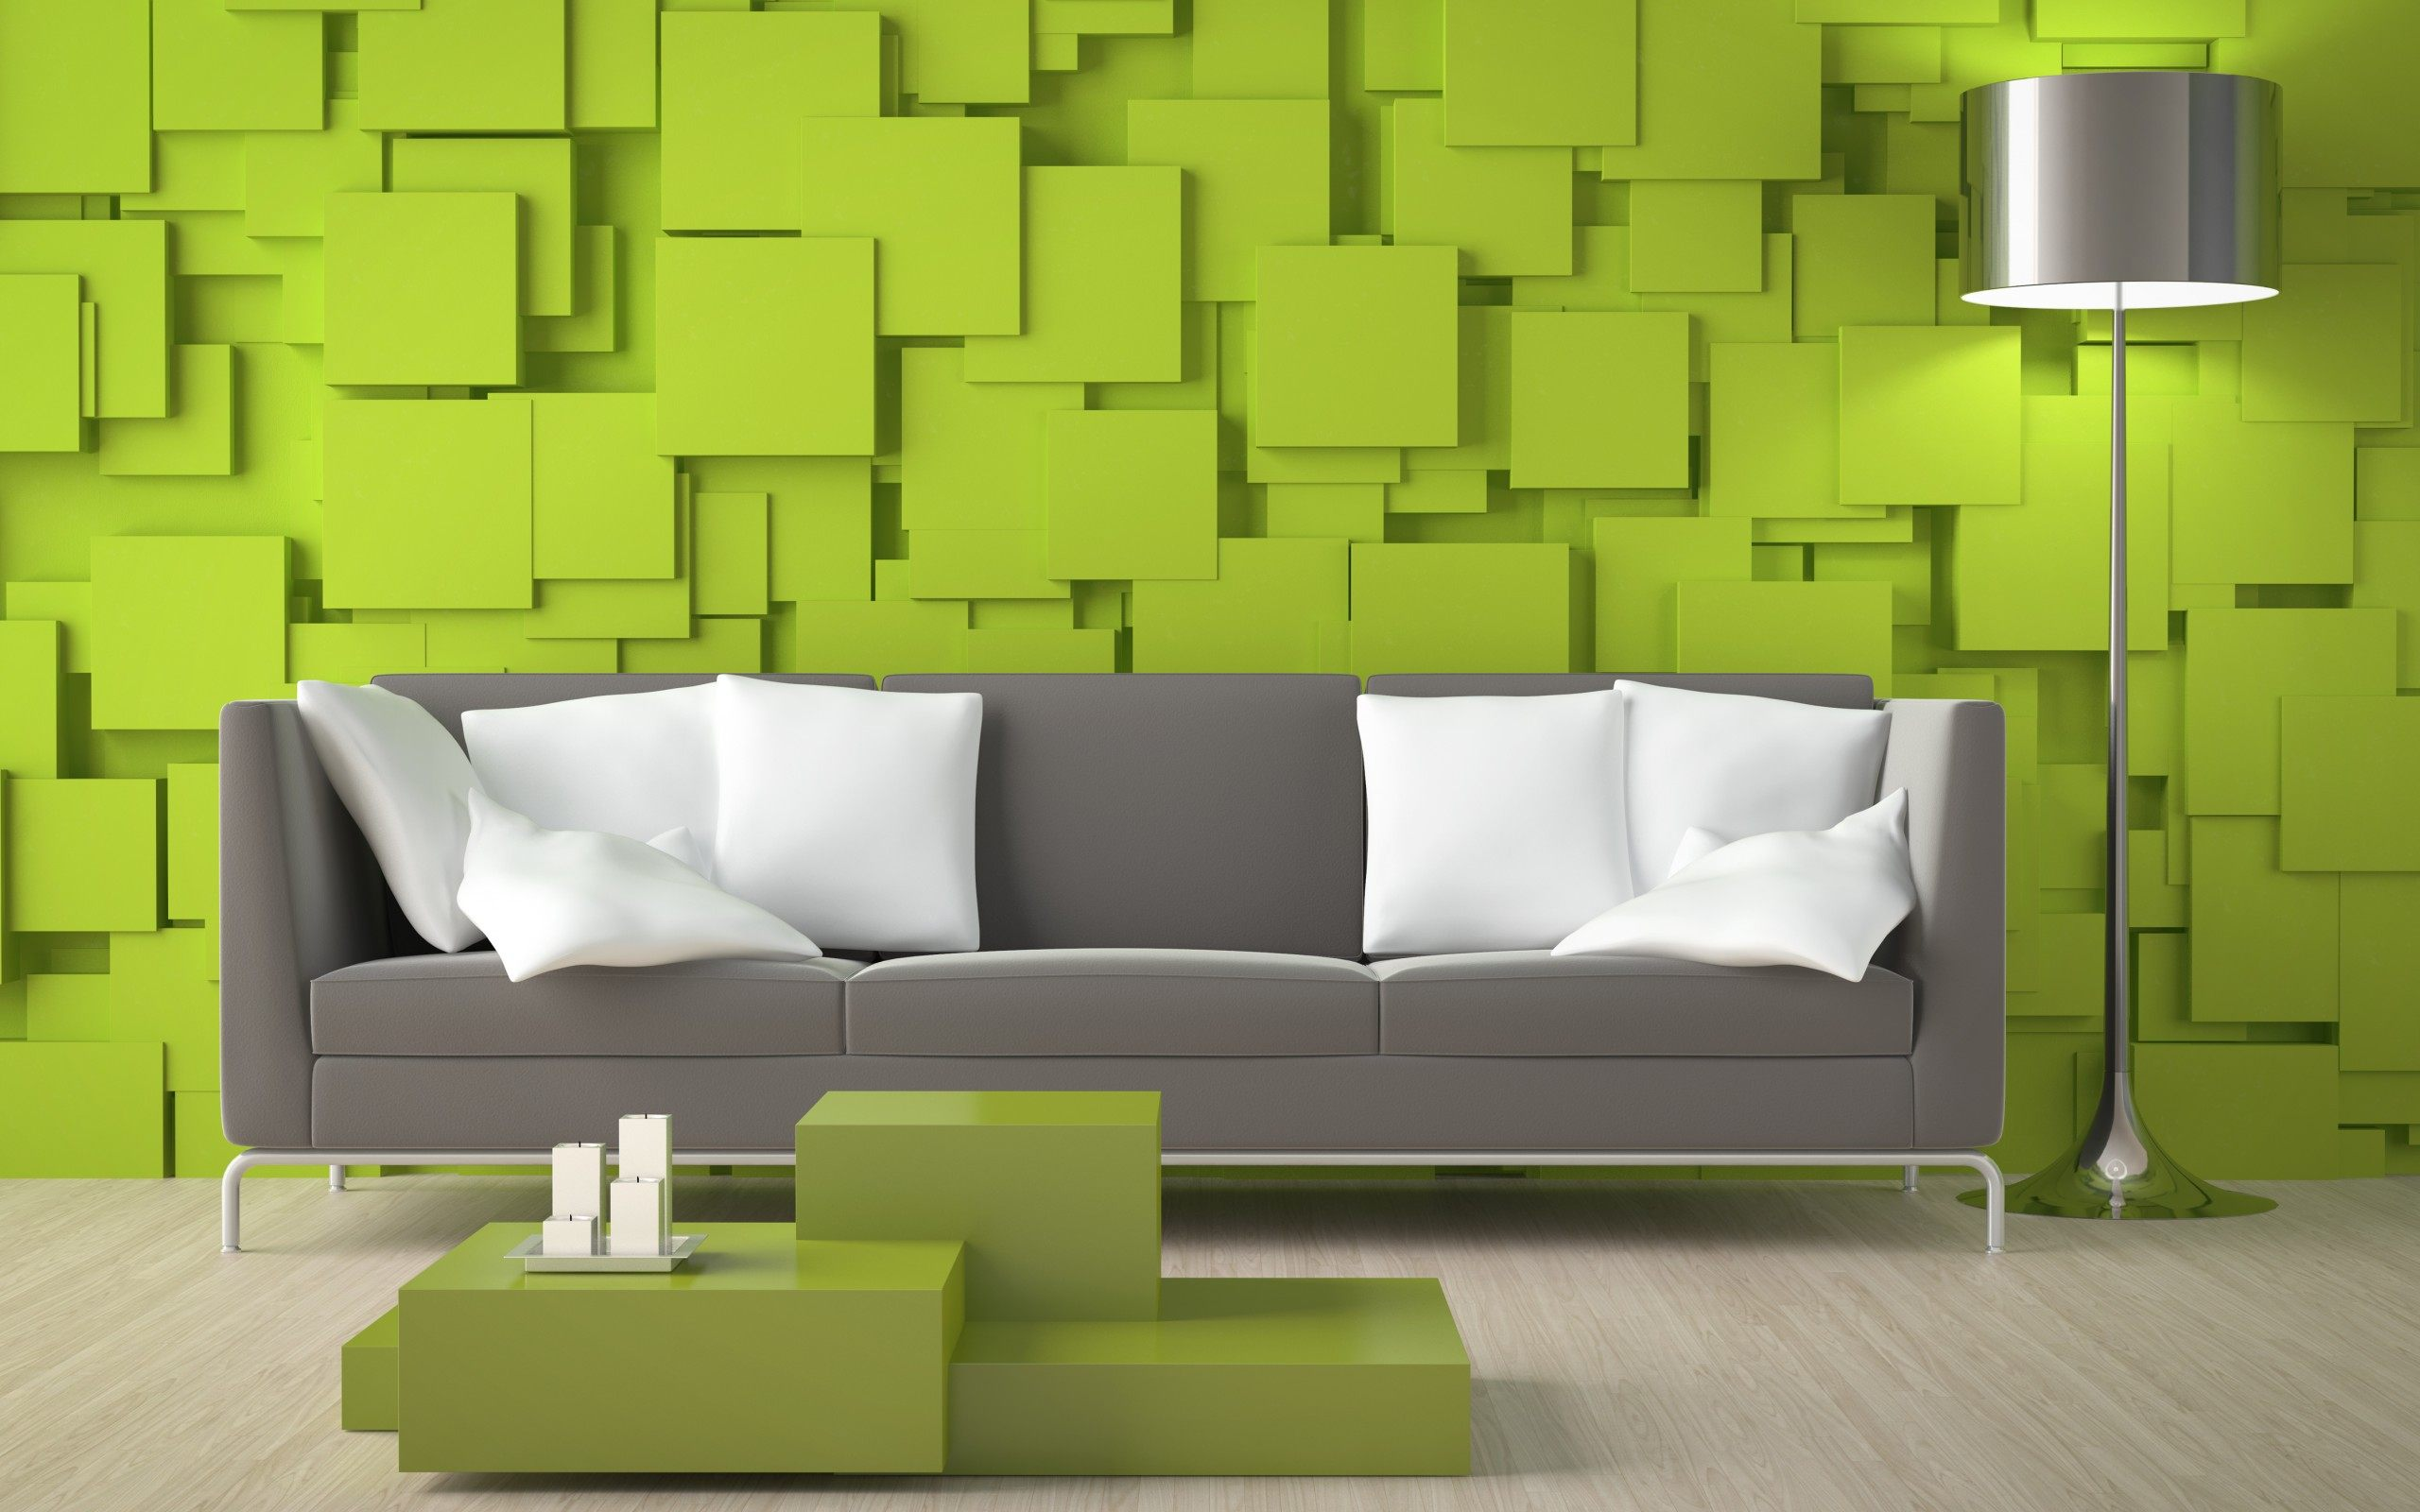 Wall Paint Design For Living Room - HD Wallpaper